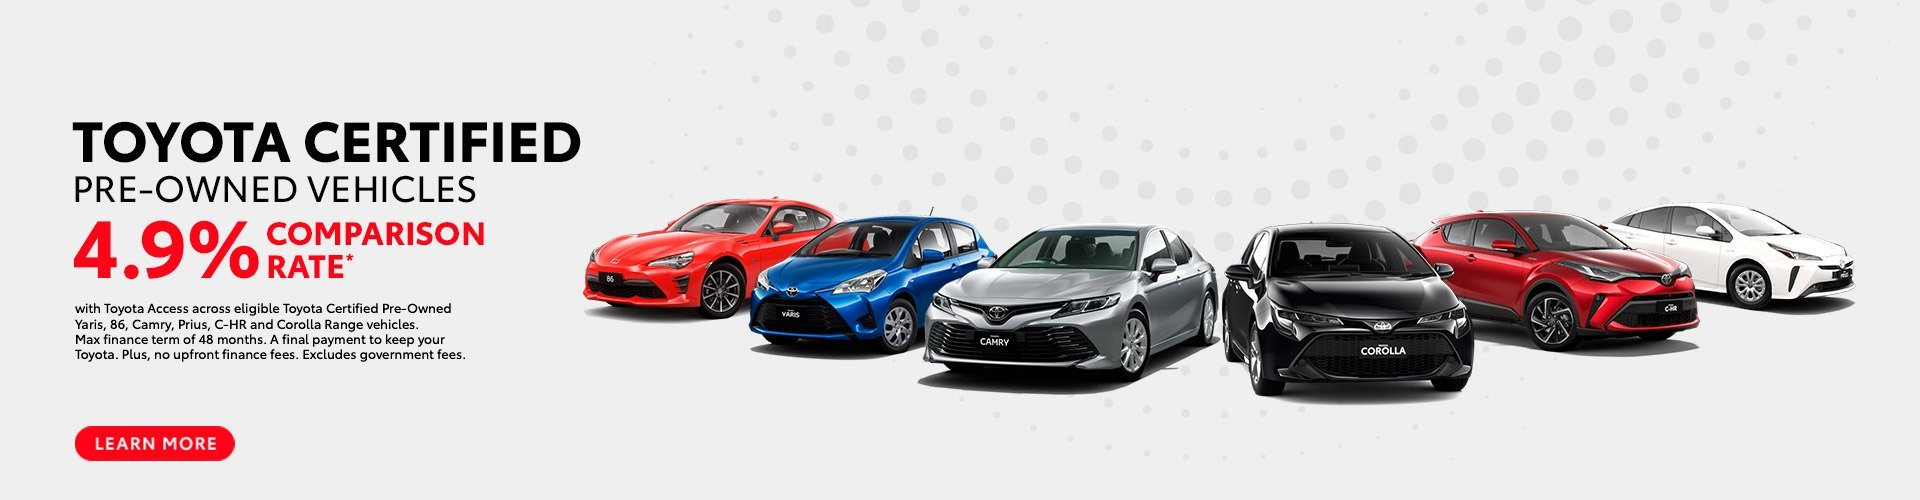 Traralgon Toyota - Certified Pre-Owned Vehicle 4.9% Finance Offer